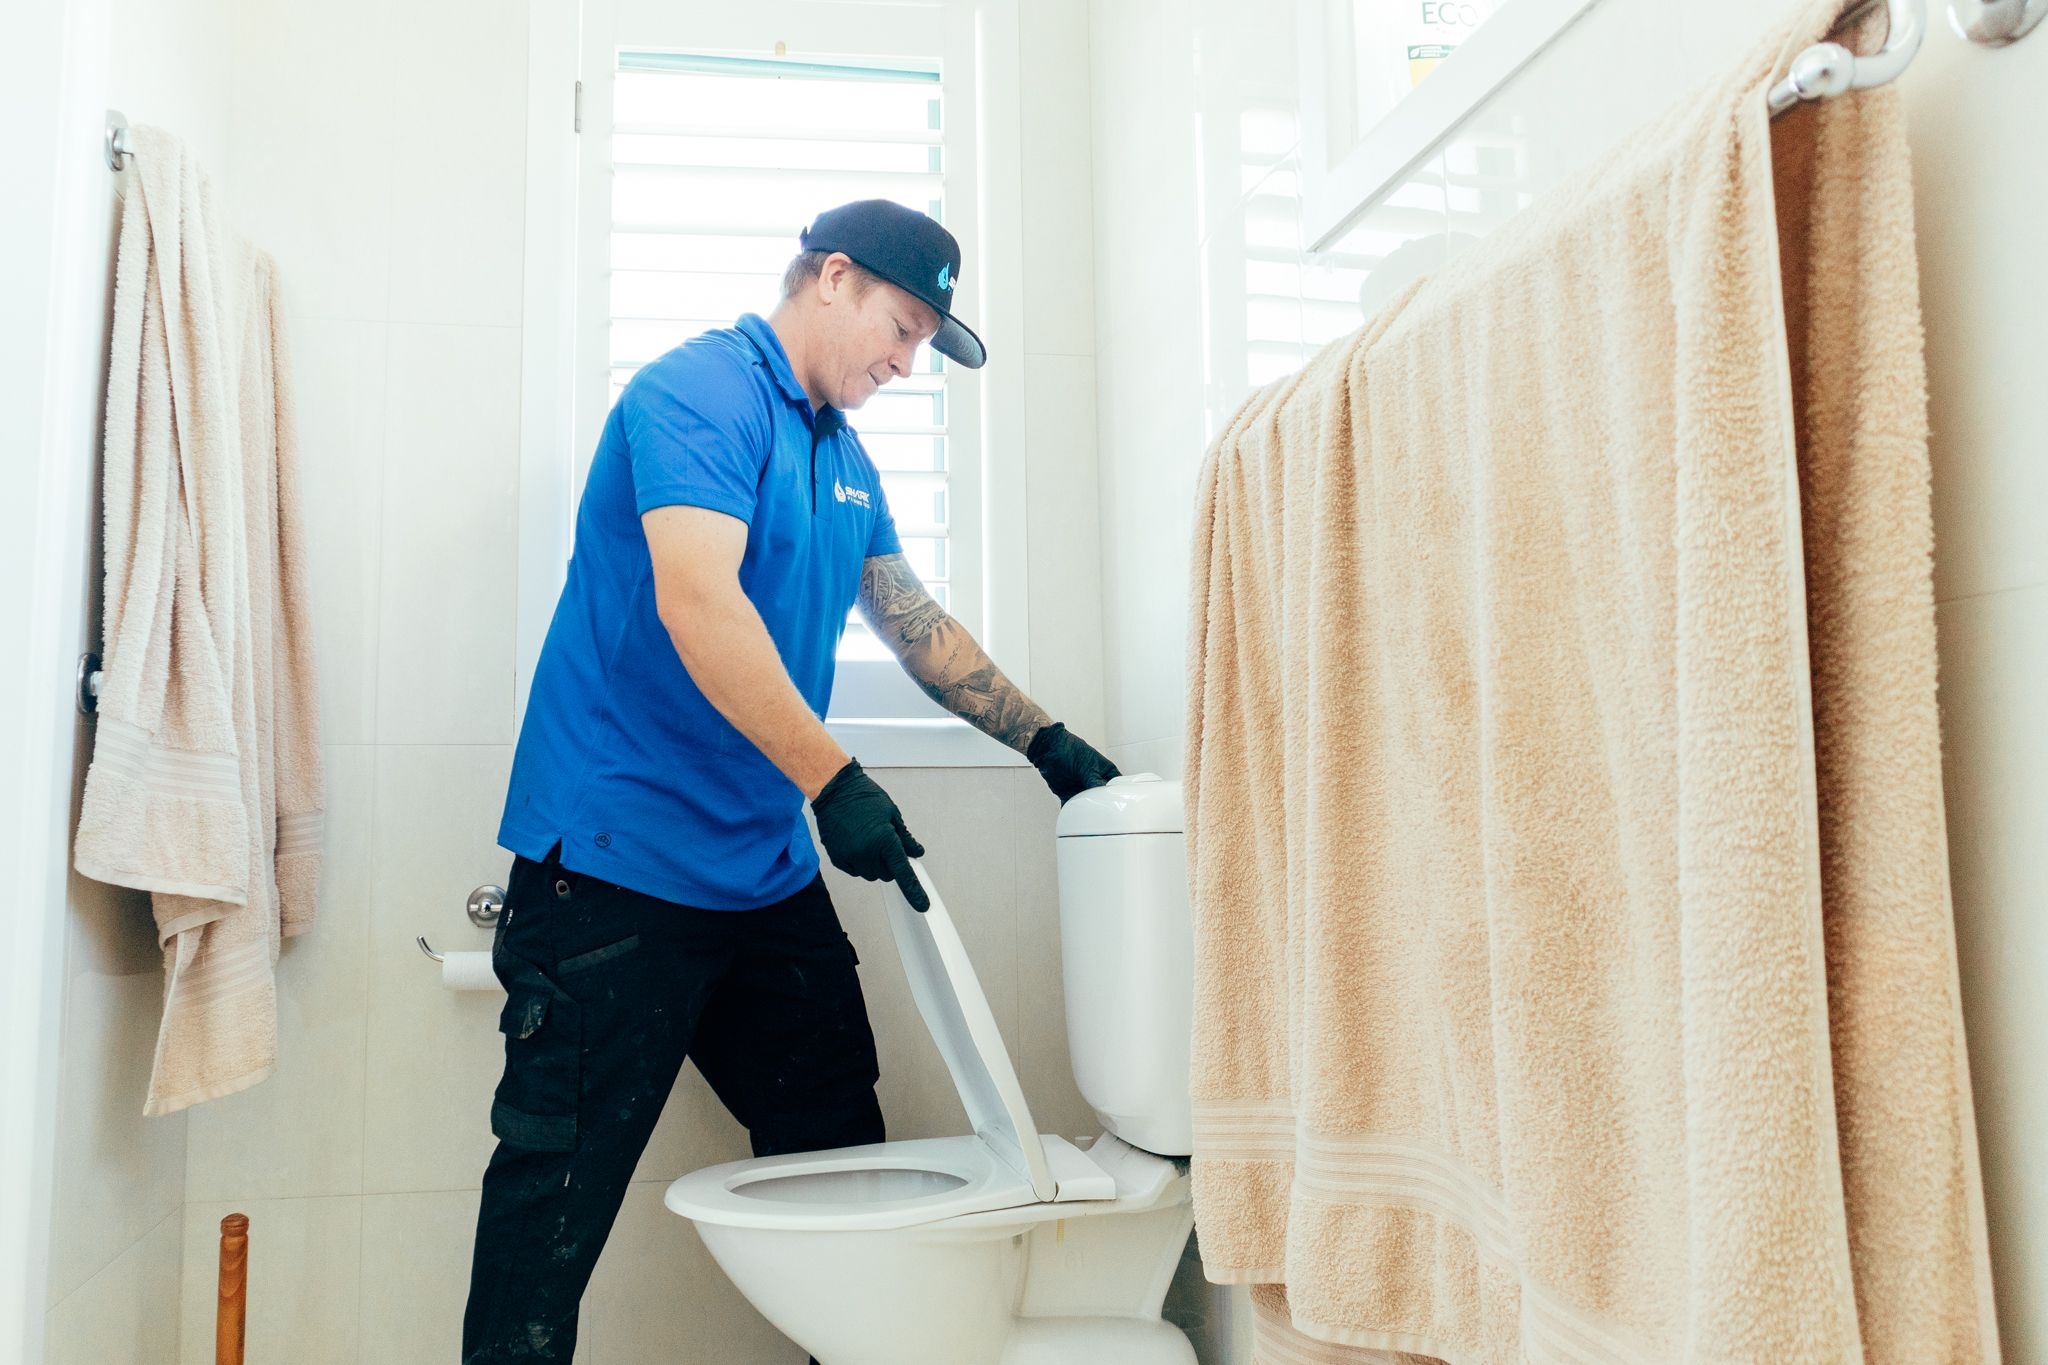 Gold Coast Plumber In Action